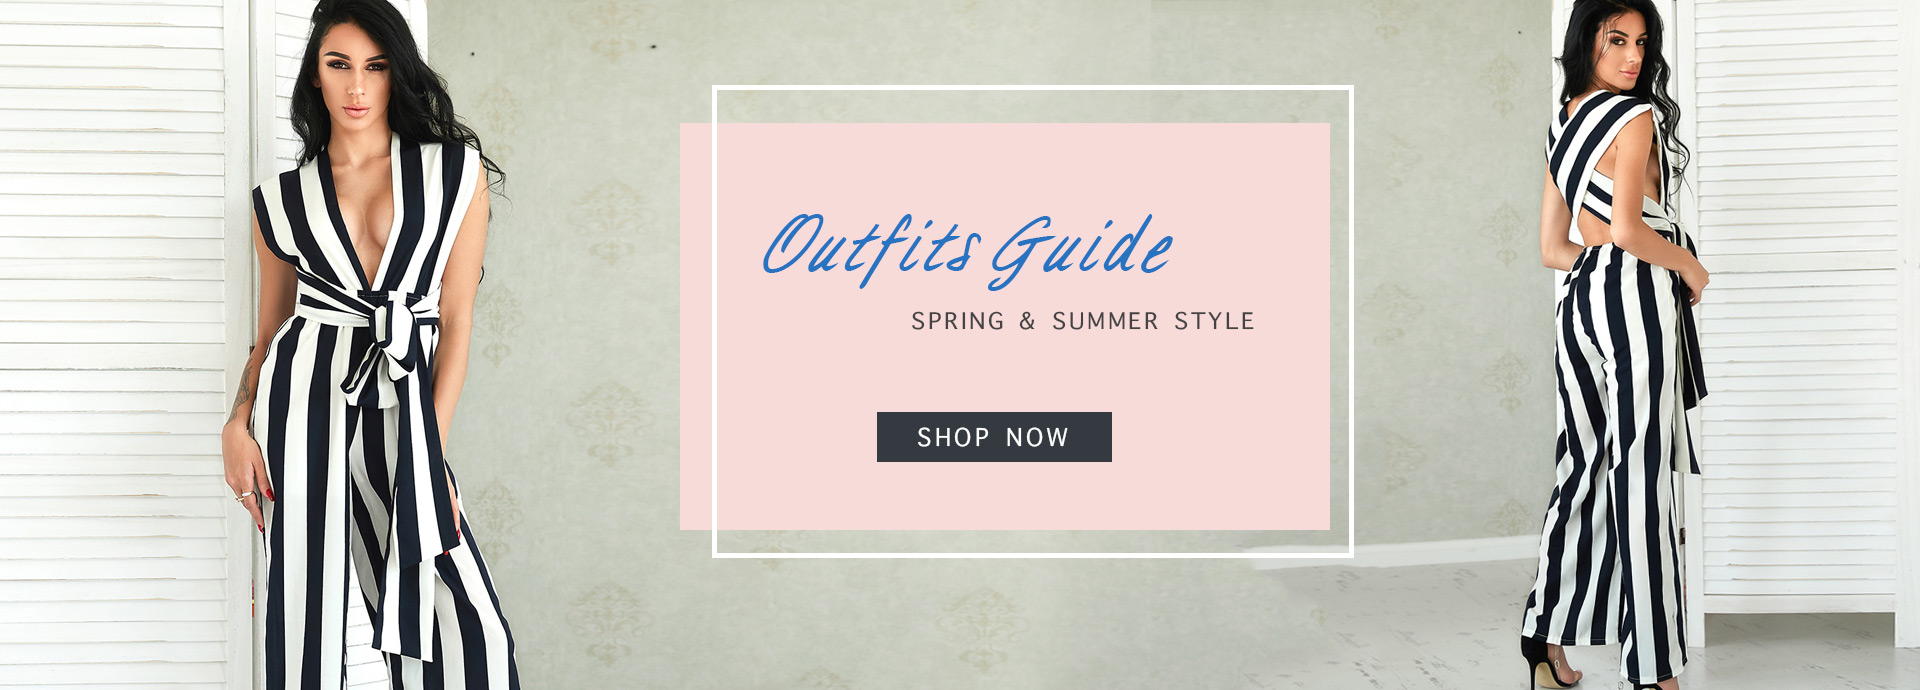 Outfits Guide